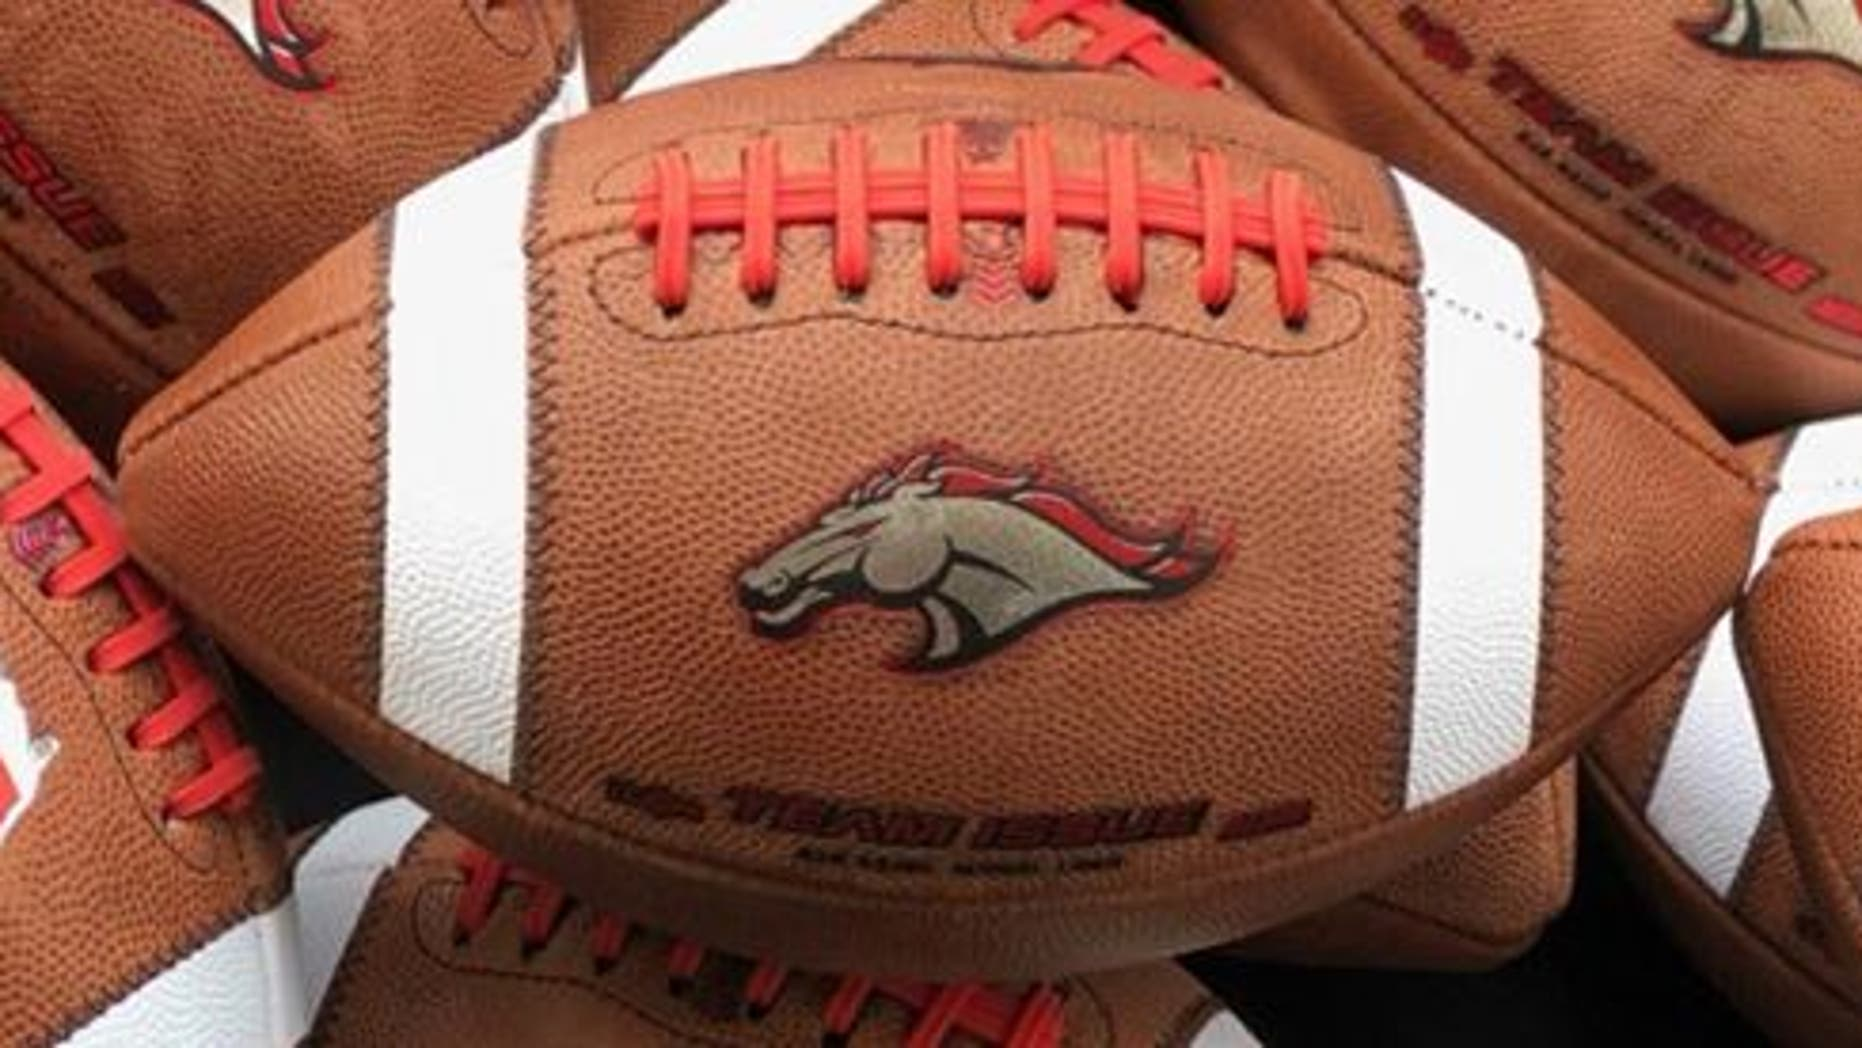 The logo of Brophy Prep's Broncos is seen on game footballs.